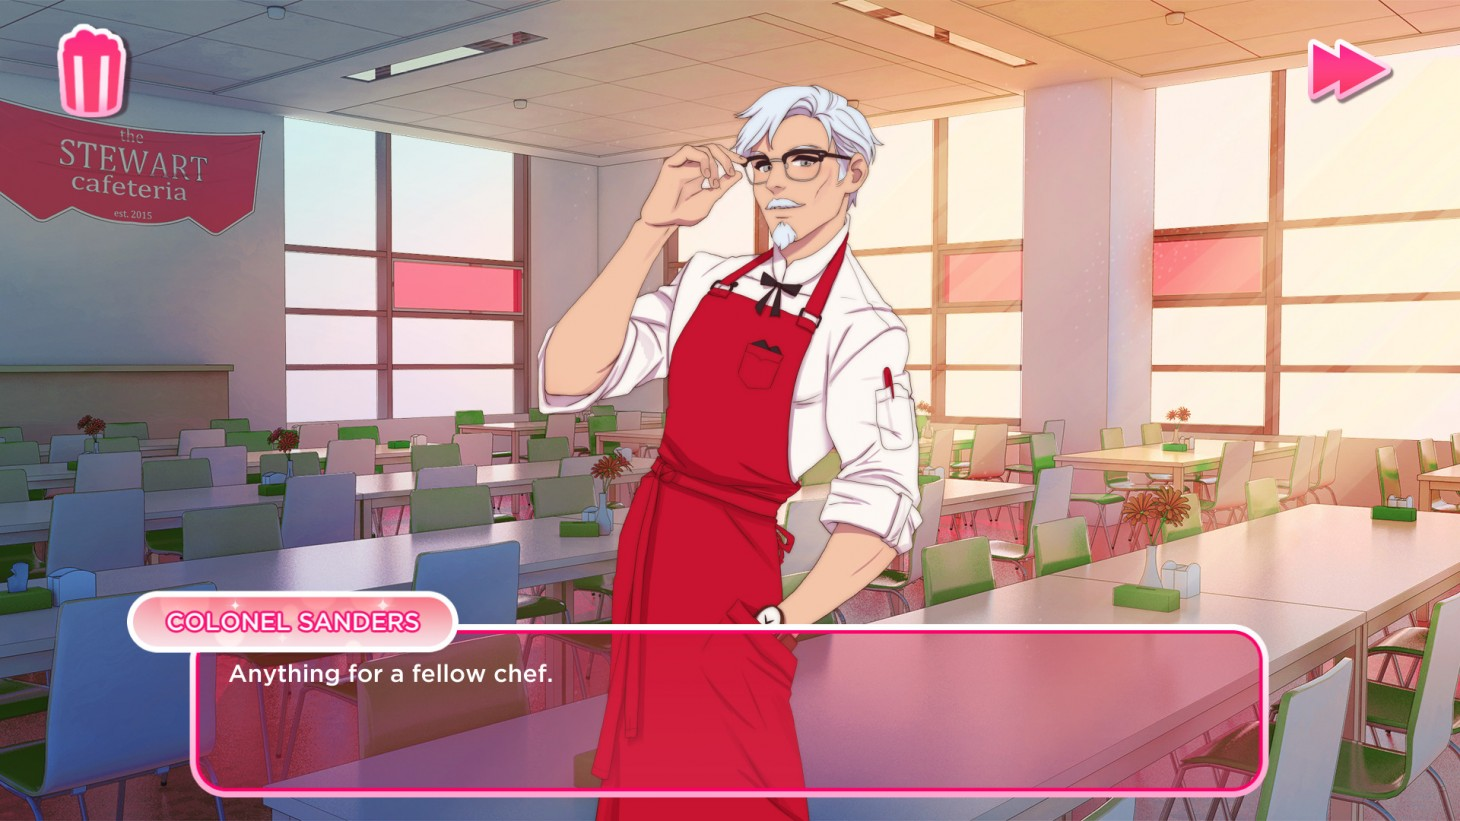 KFC Is Making A Game Where You Can Date Colonel Sanders